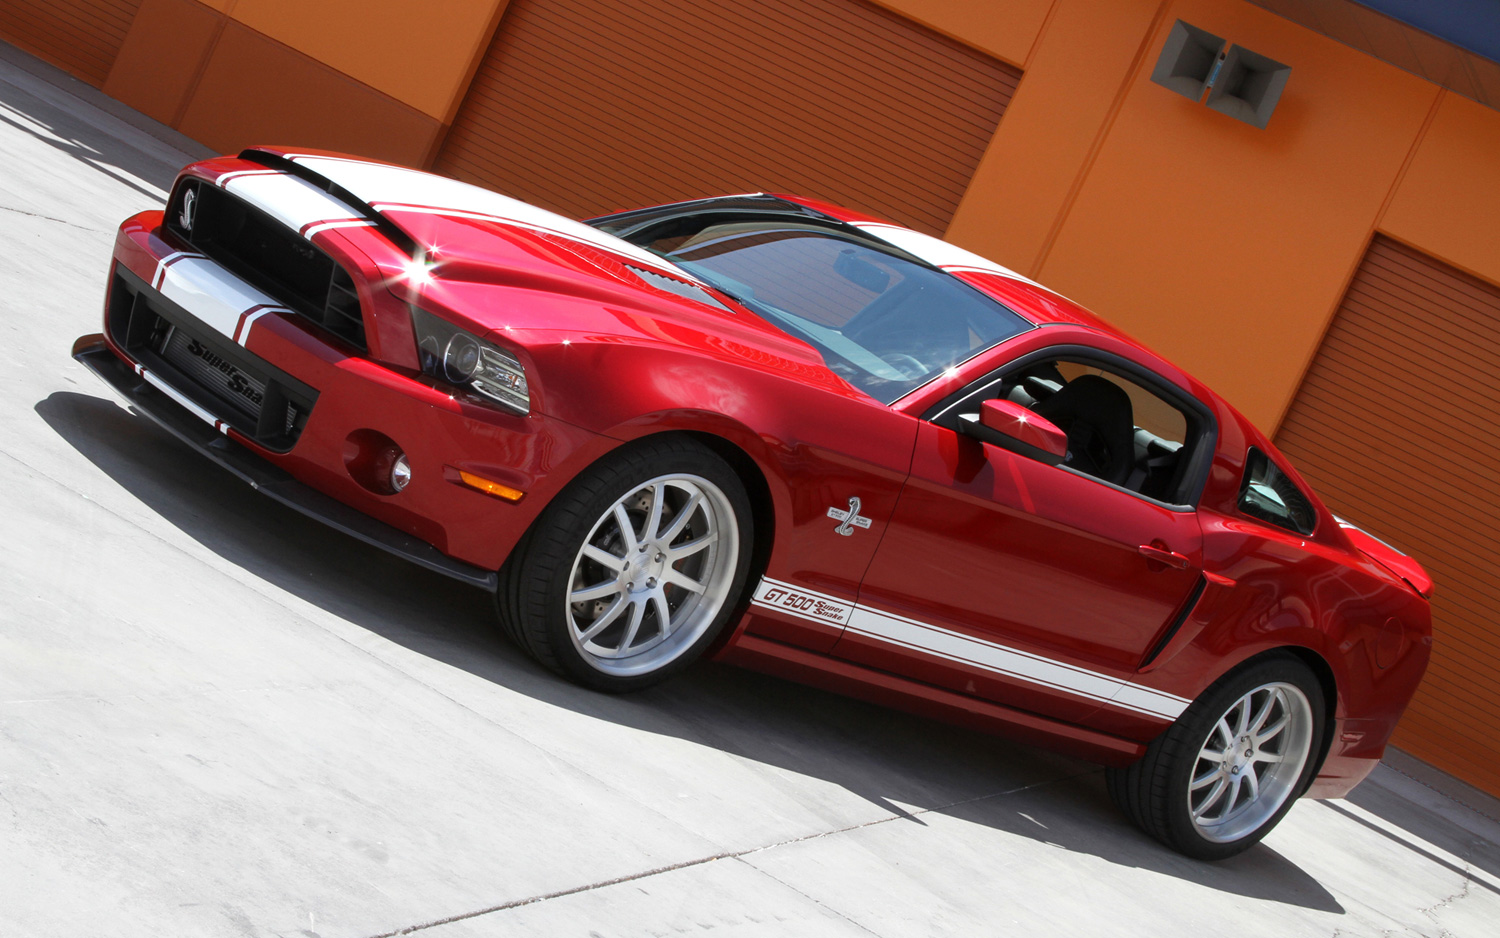 2013 Shelby Gt500 Super Snake Package Details Revealed Priced At